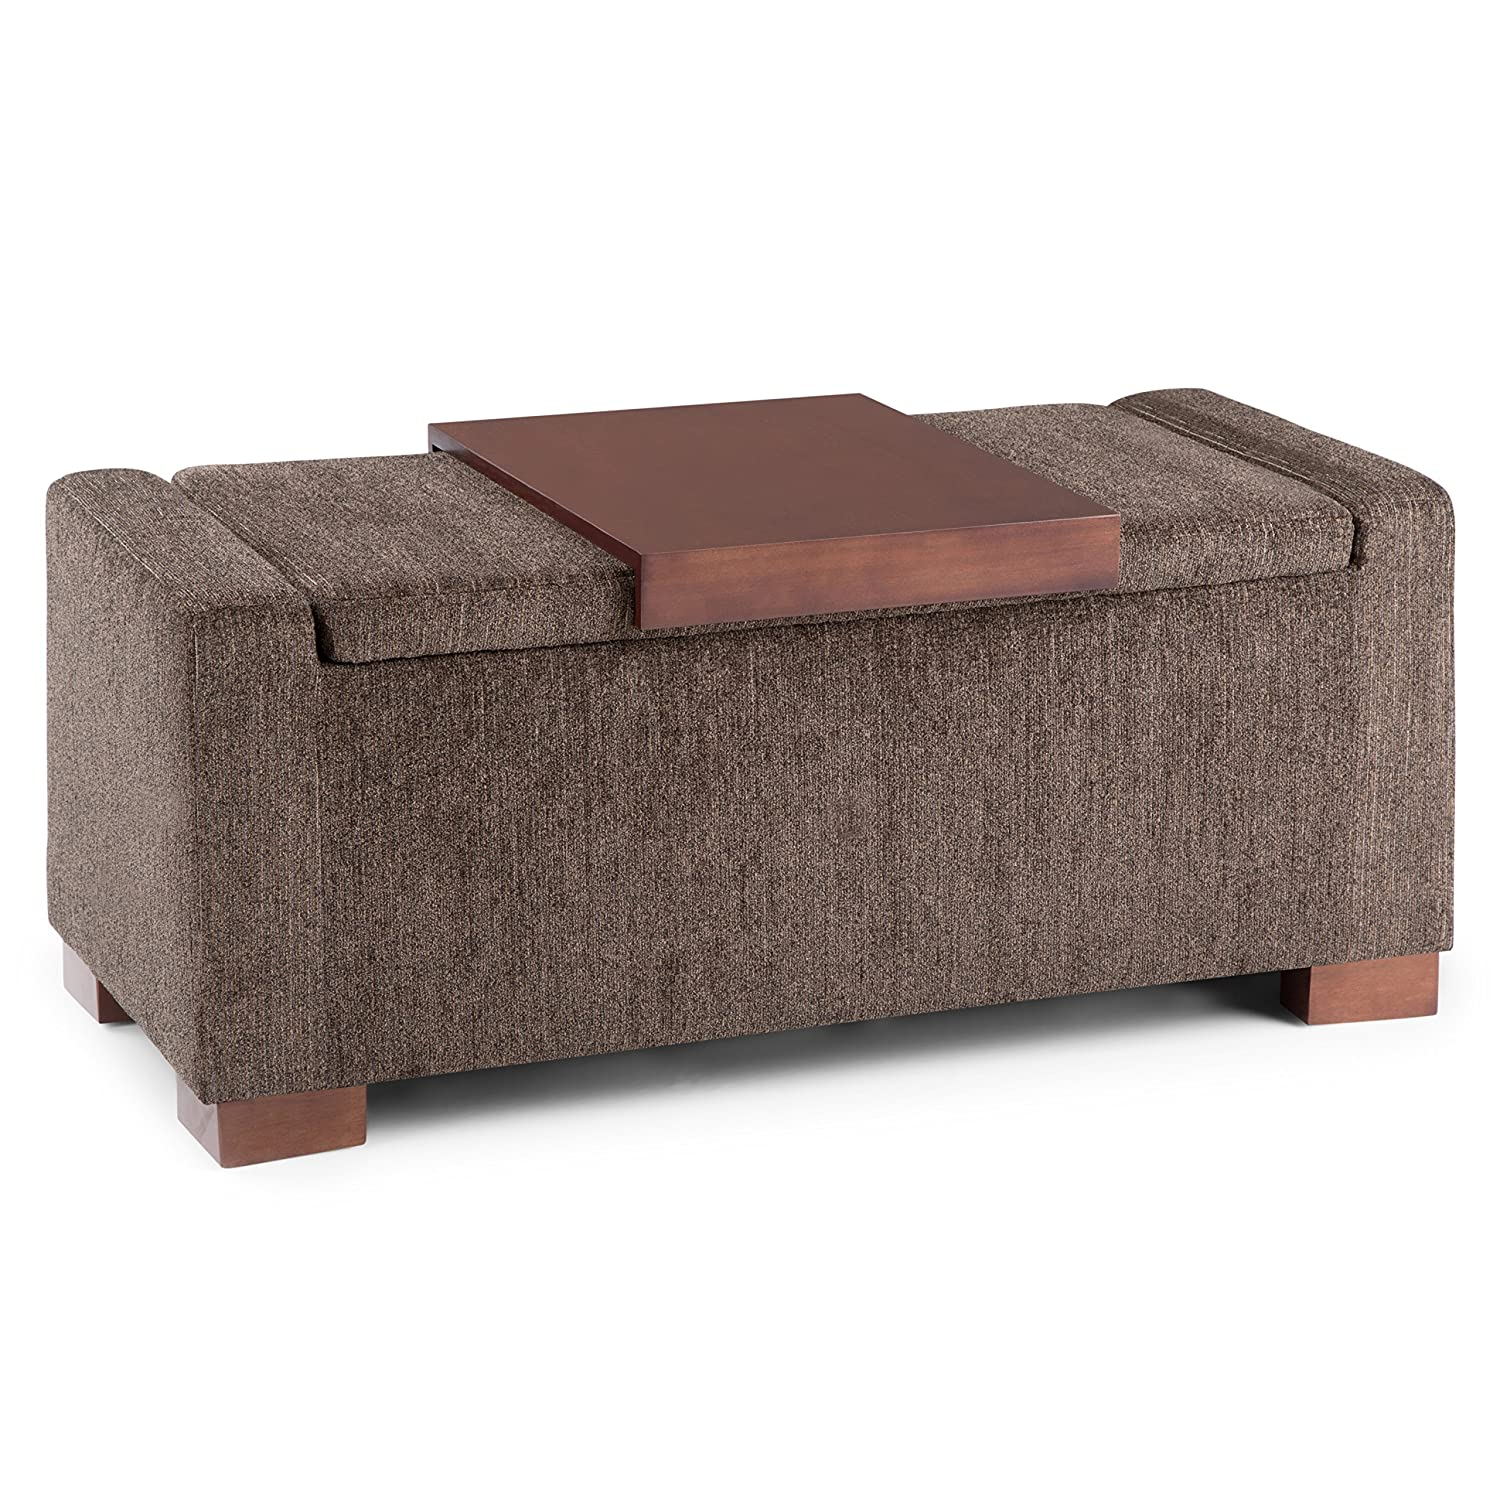 Sensational Simpli Home Axcot 289 Bretton 42 Inch Wide Contemporary Rectangle Lift Top Storage Ottoman In Deep Umber Brown Fabric Caraccident5 Cool Chair Designs And Ideas Caraccident5Info